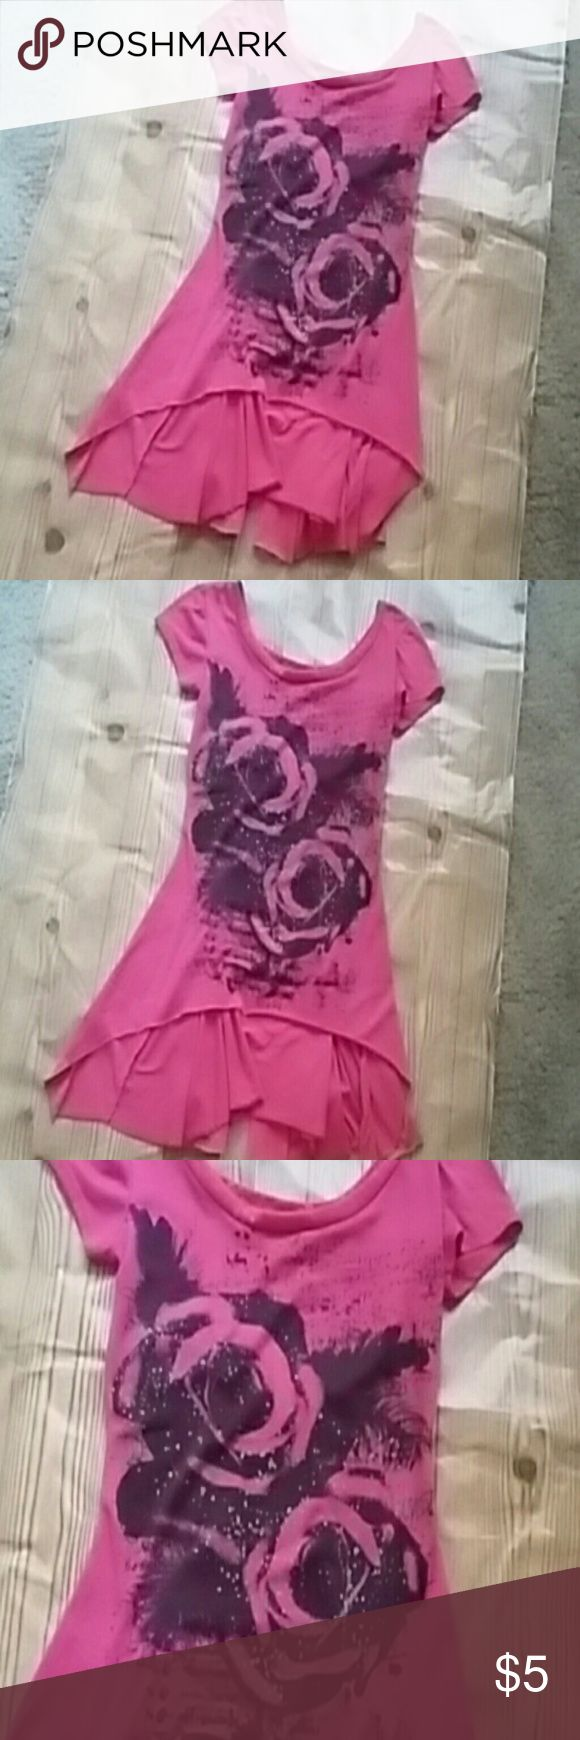 Hot pink short sleeve top with ruffled bottom 36 to 40 bust, pink short sleeve top with flower desogn in black and silver (glitter) Tops Tees - Short Sleeve